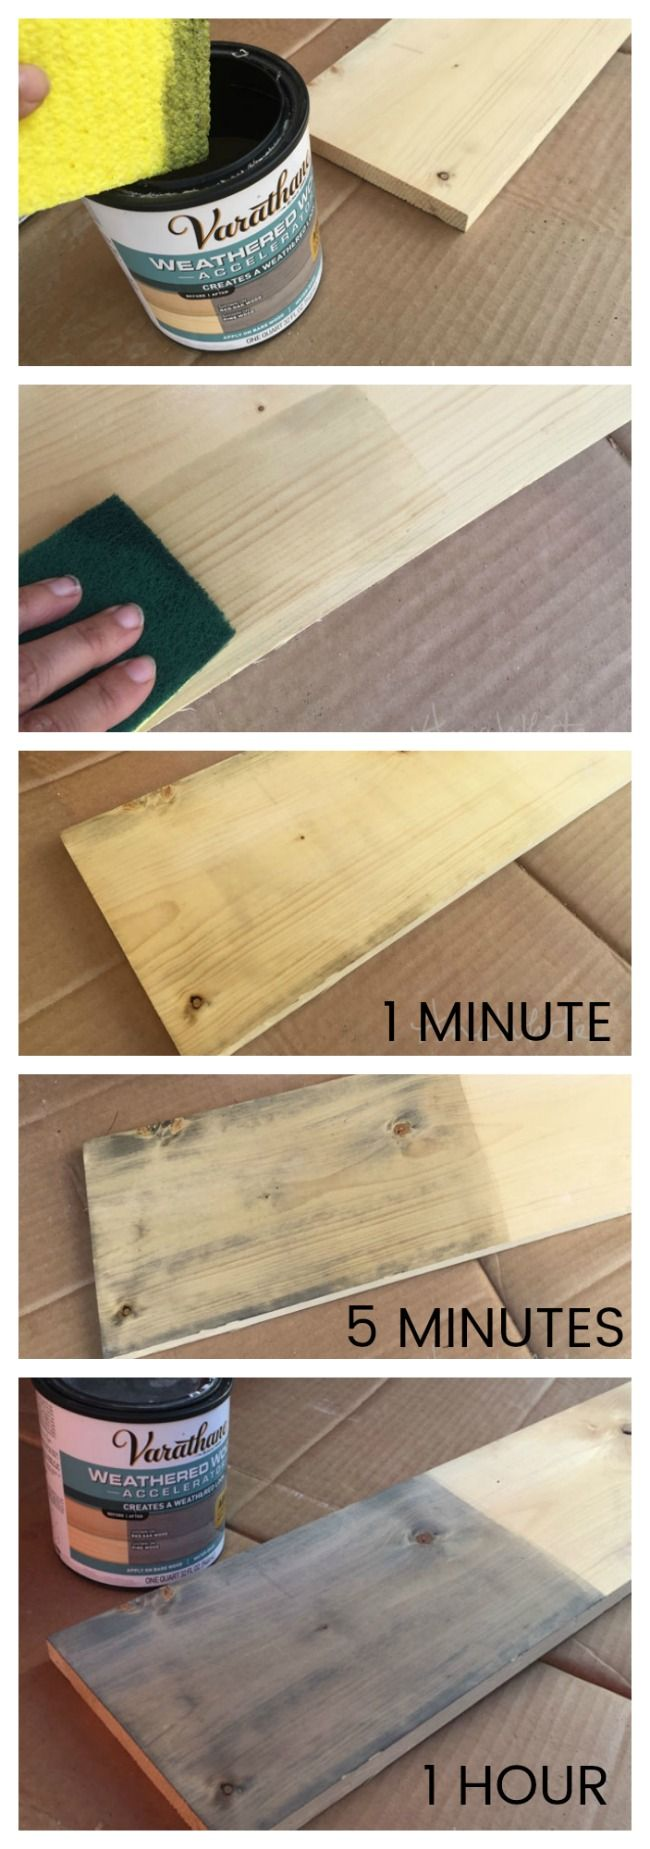 Varathane Weathered Wood Accelerator | Ana White Woodworking Projects